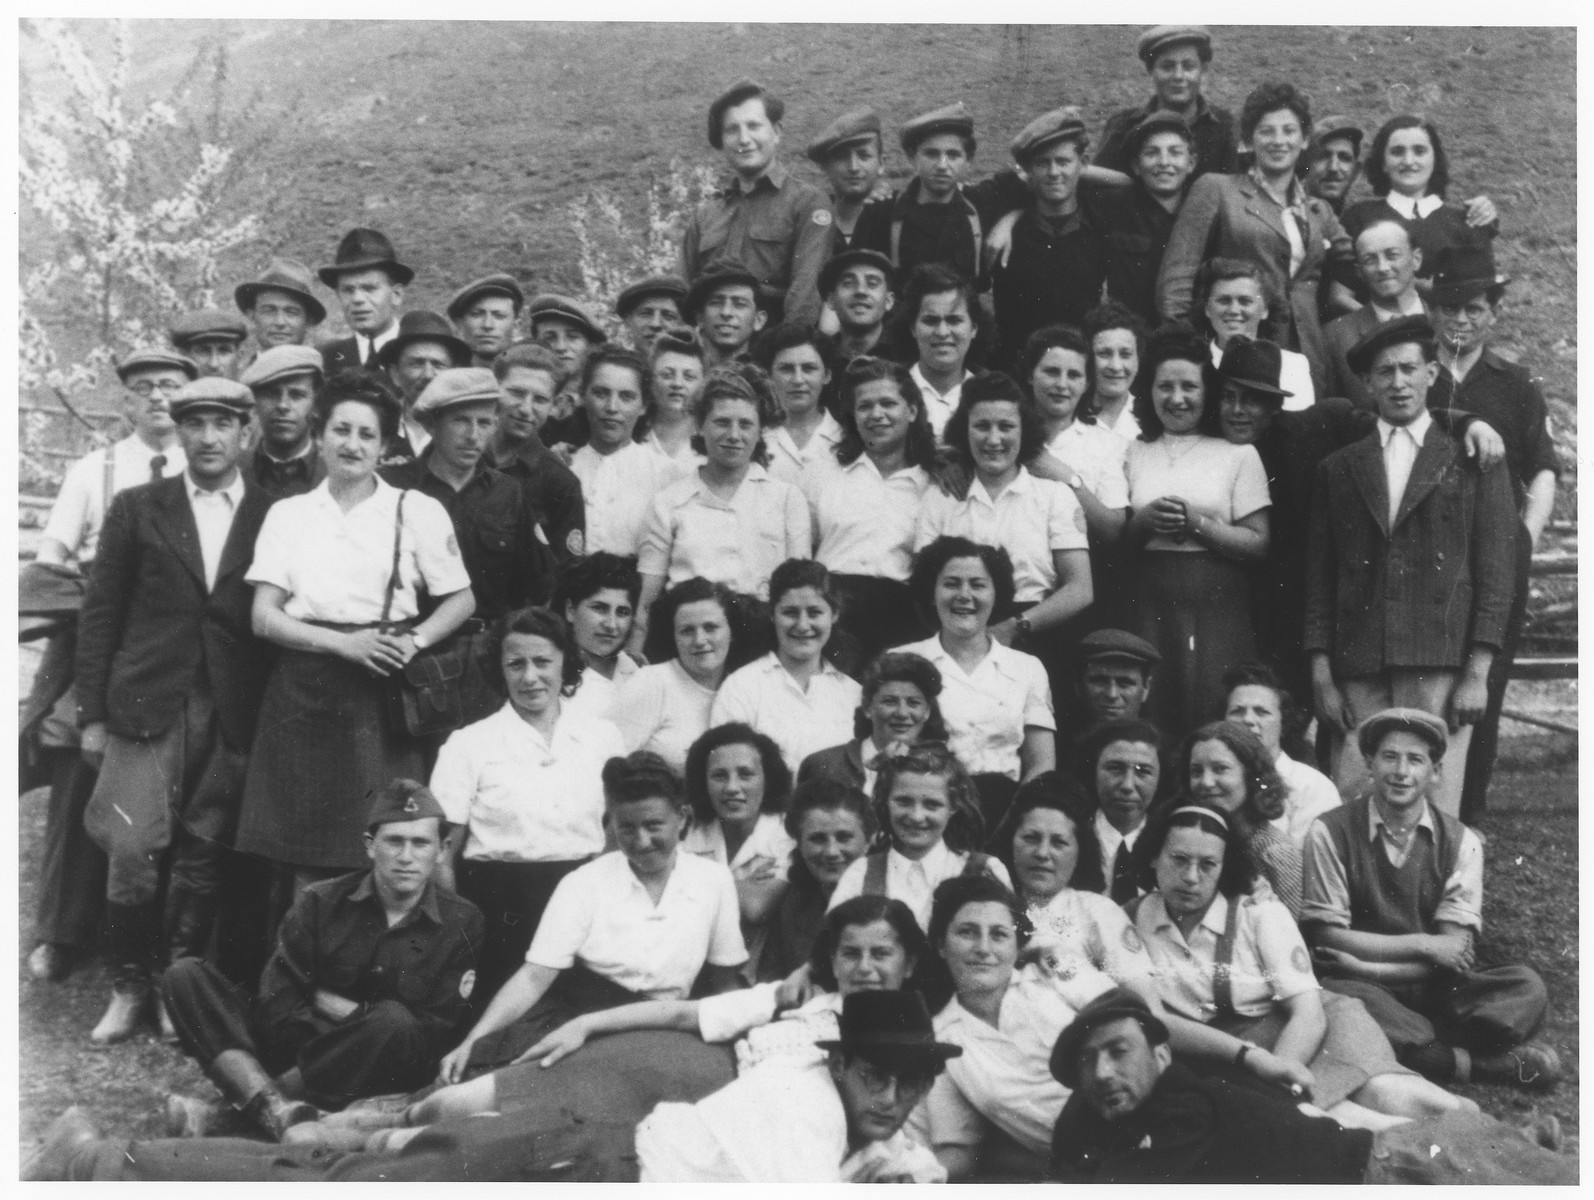 Group portrait of members of the Mizrachi religious Zionist youth movement in the Bad Gastein displaced persons camp.  Among those pictured are lying down: Schaja Klein and Meir Alexander Halpern. Directly behind Meir is Ettu Schwartz.  Maity Klein is behind her wearing a tie.  Leah Halpern is behind her to the left. In the first standing row, Moshe Weinstein is third from the left and to his left is Naftali Benhaim.  Standing in that row behind Leah is Pnina Halpern.  Also pictured are Israel Klein, Rifka Klein, , and Henryk Klein.